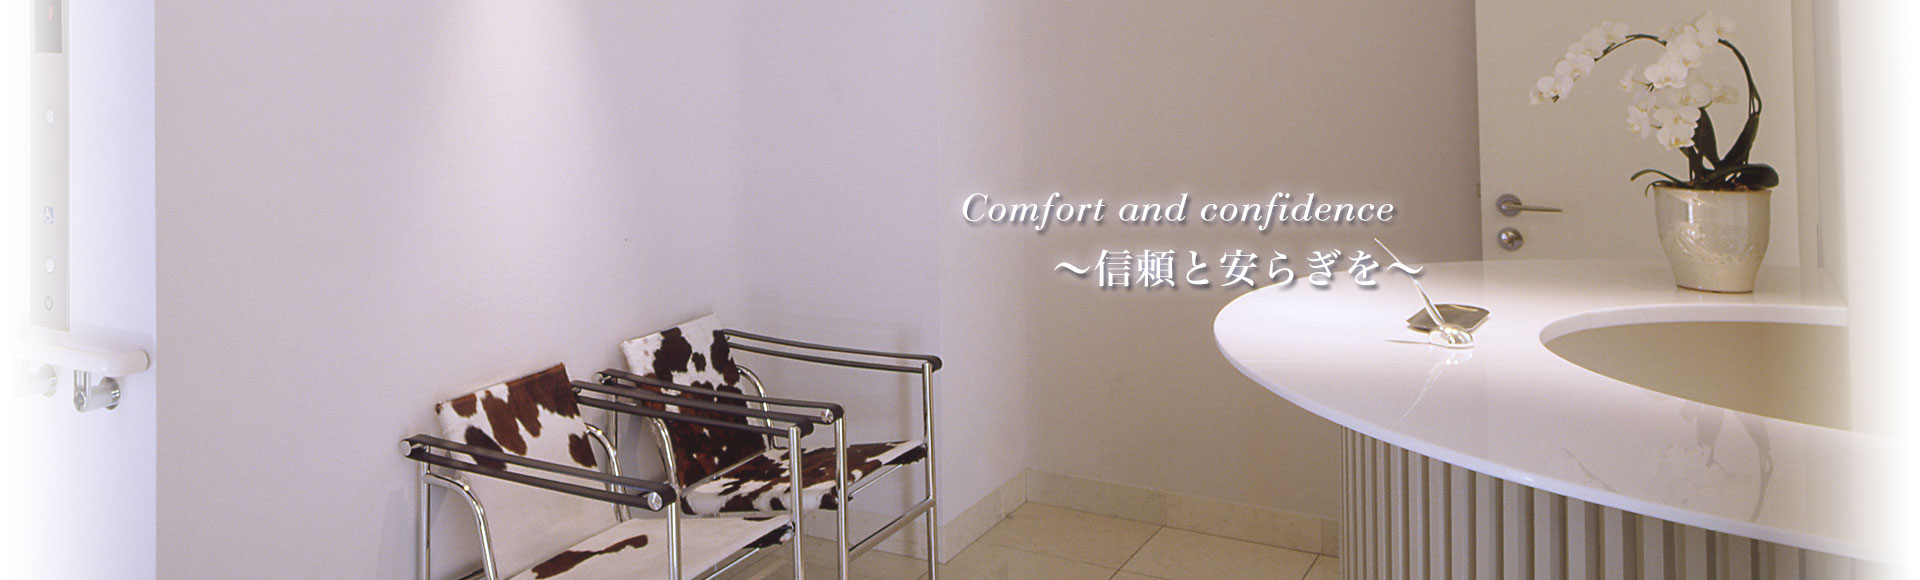 Confort and Confidence|信頼と安らぎを